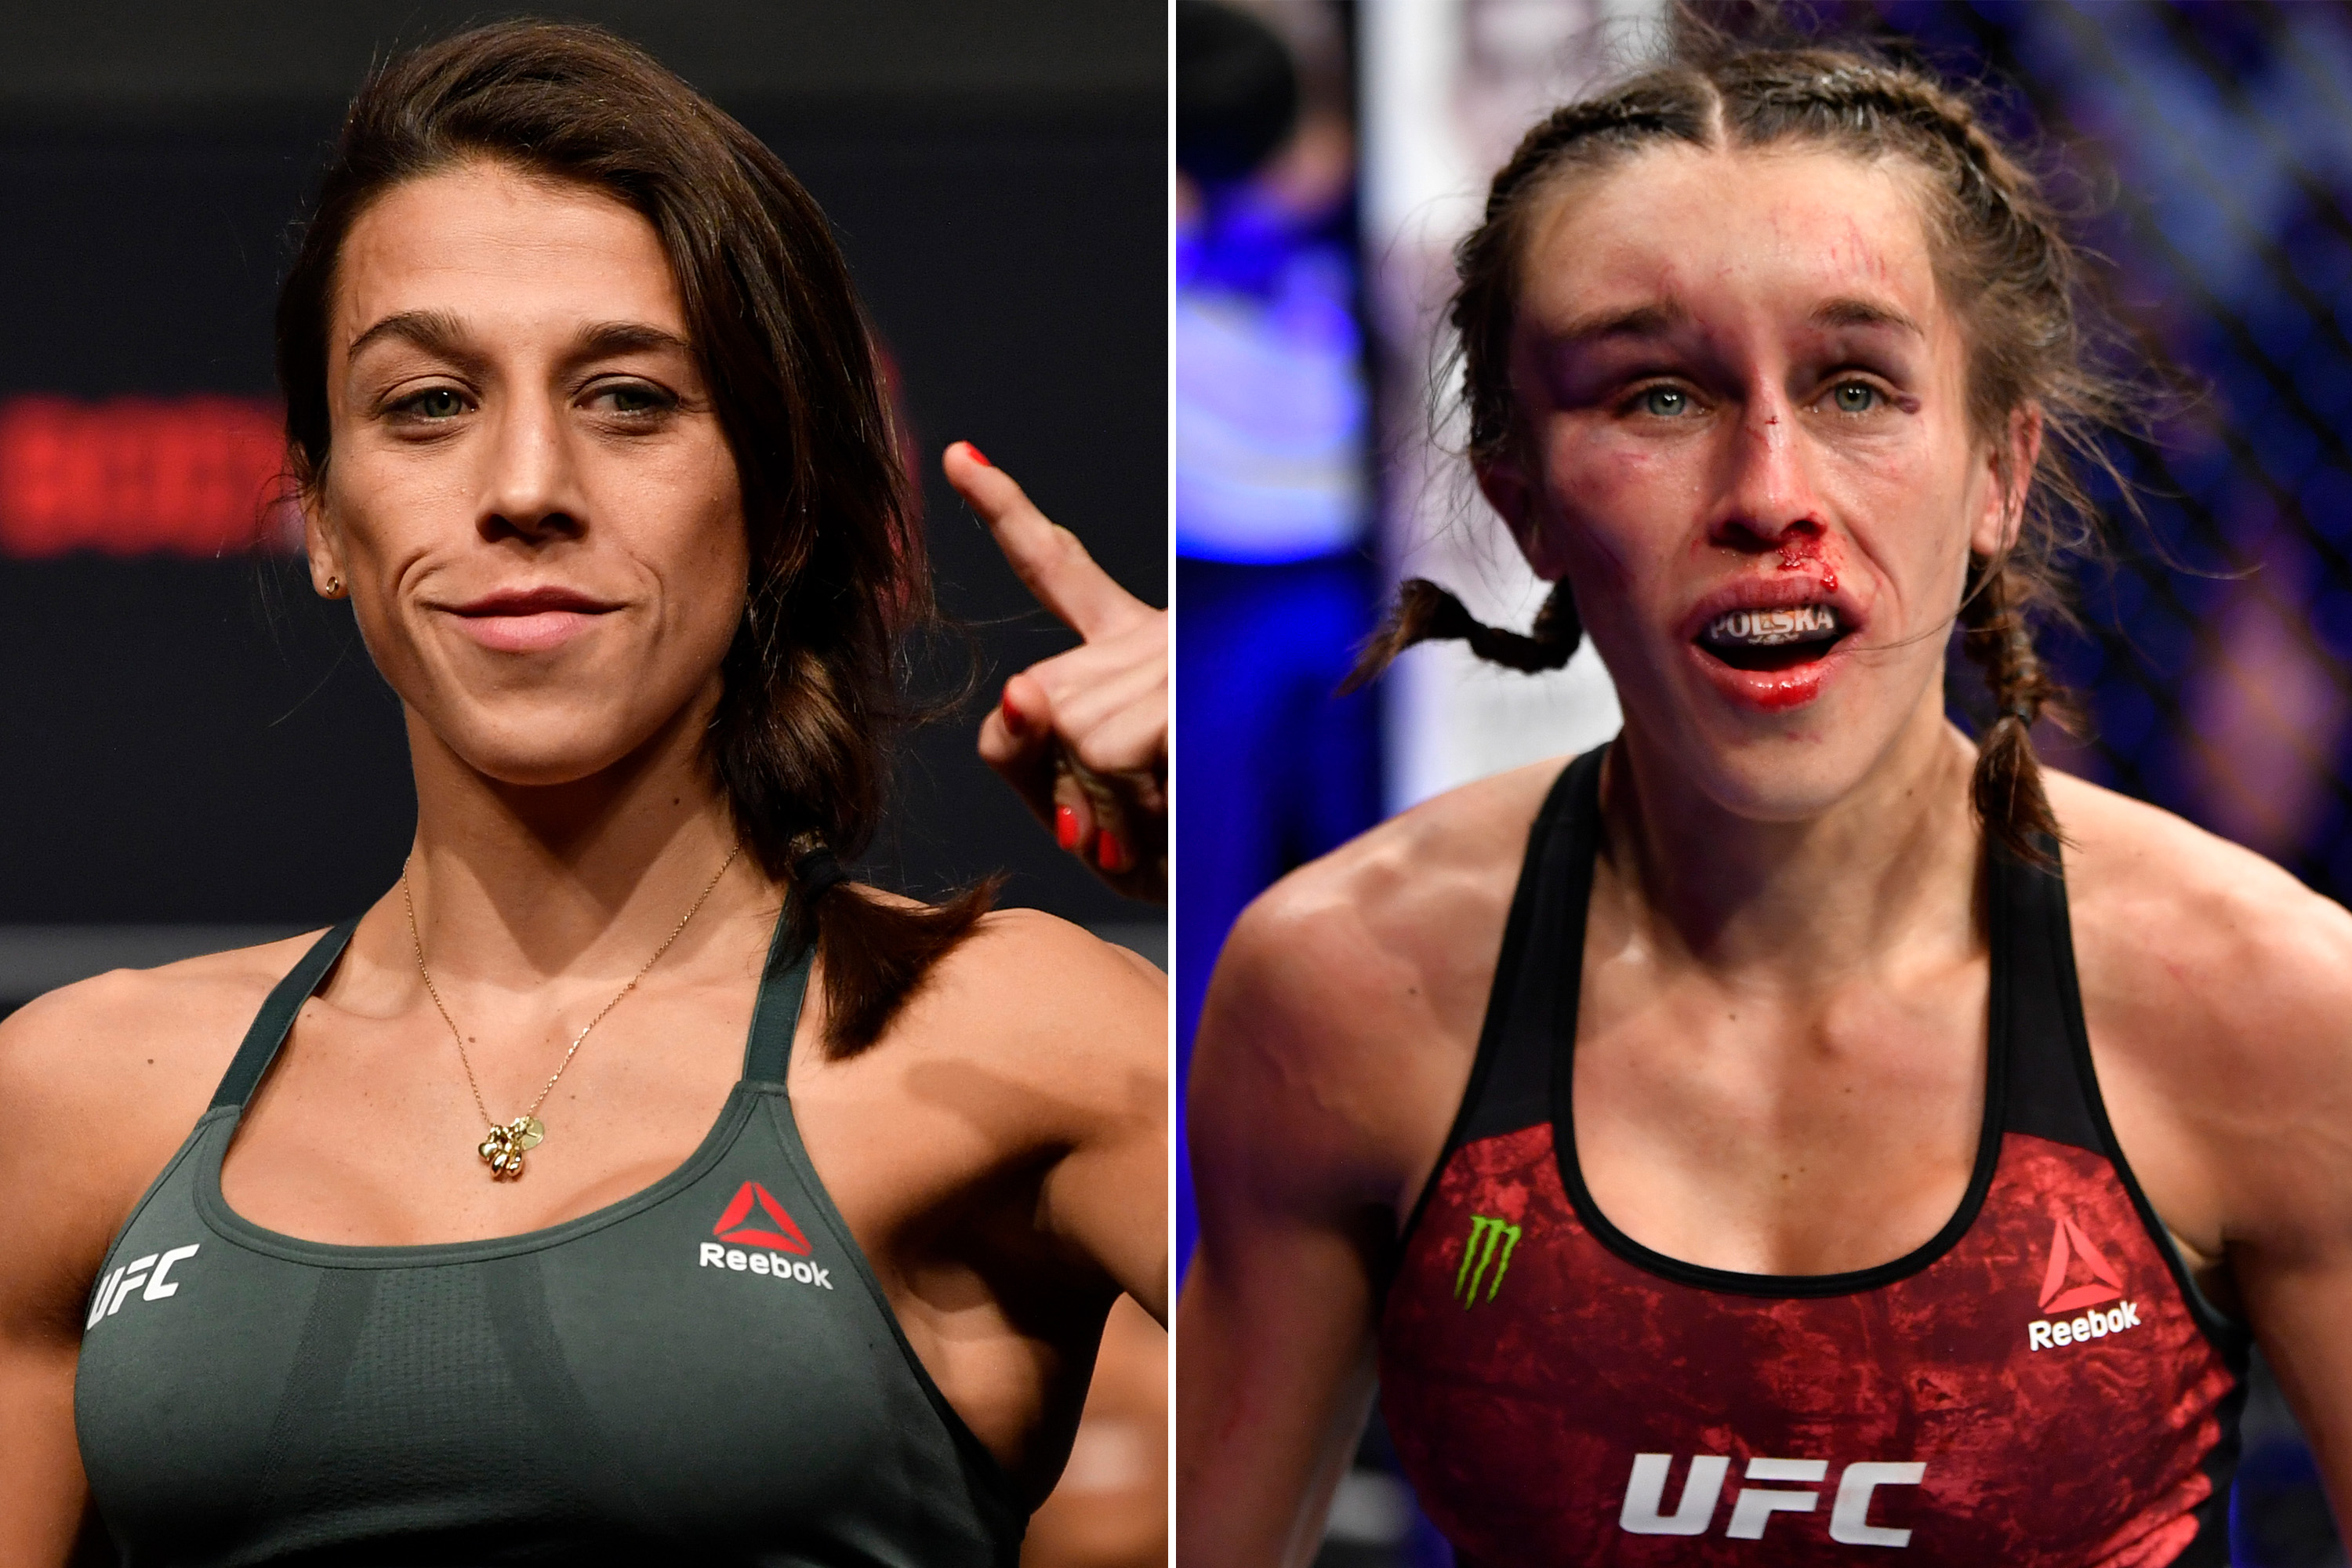 Joanna Jedrzejczyk S Face Brutalized During Ufc 248 Loss